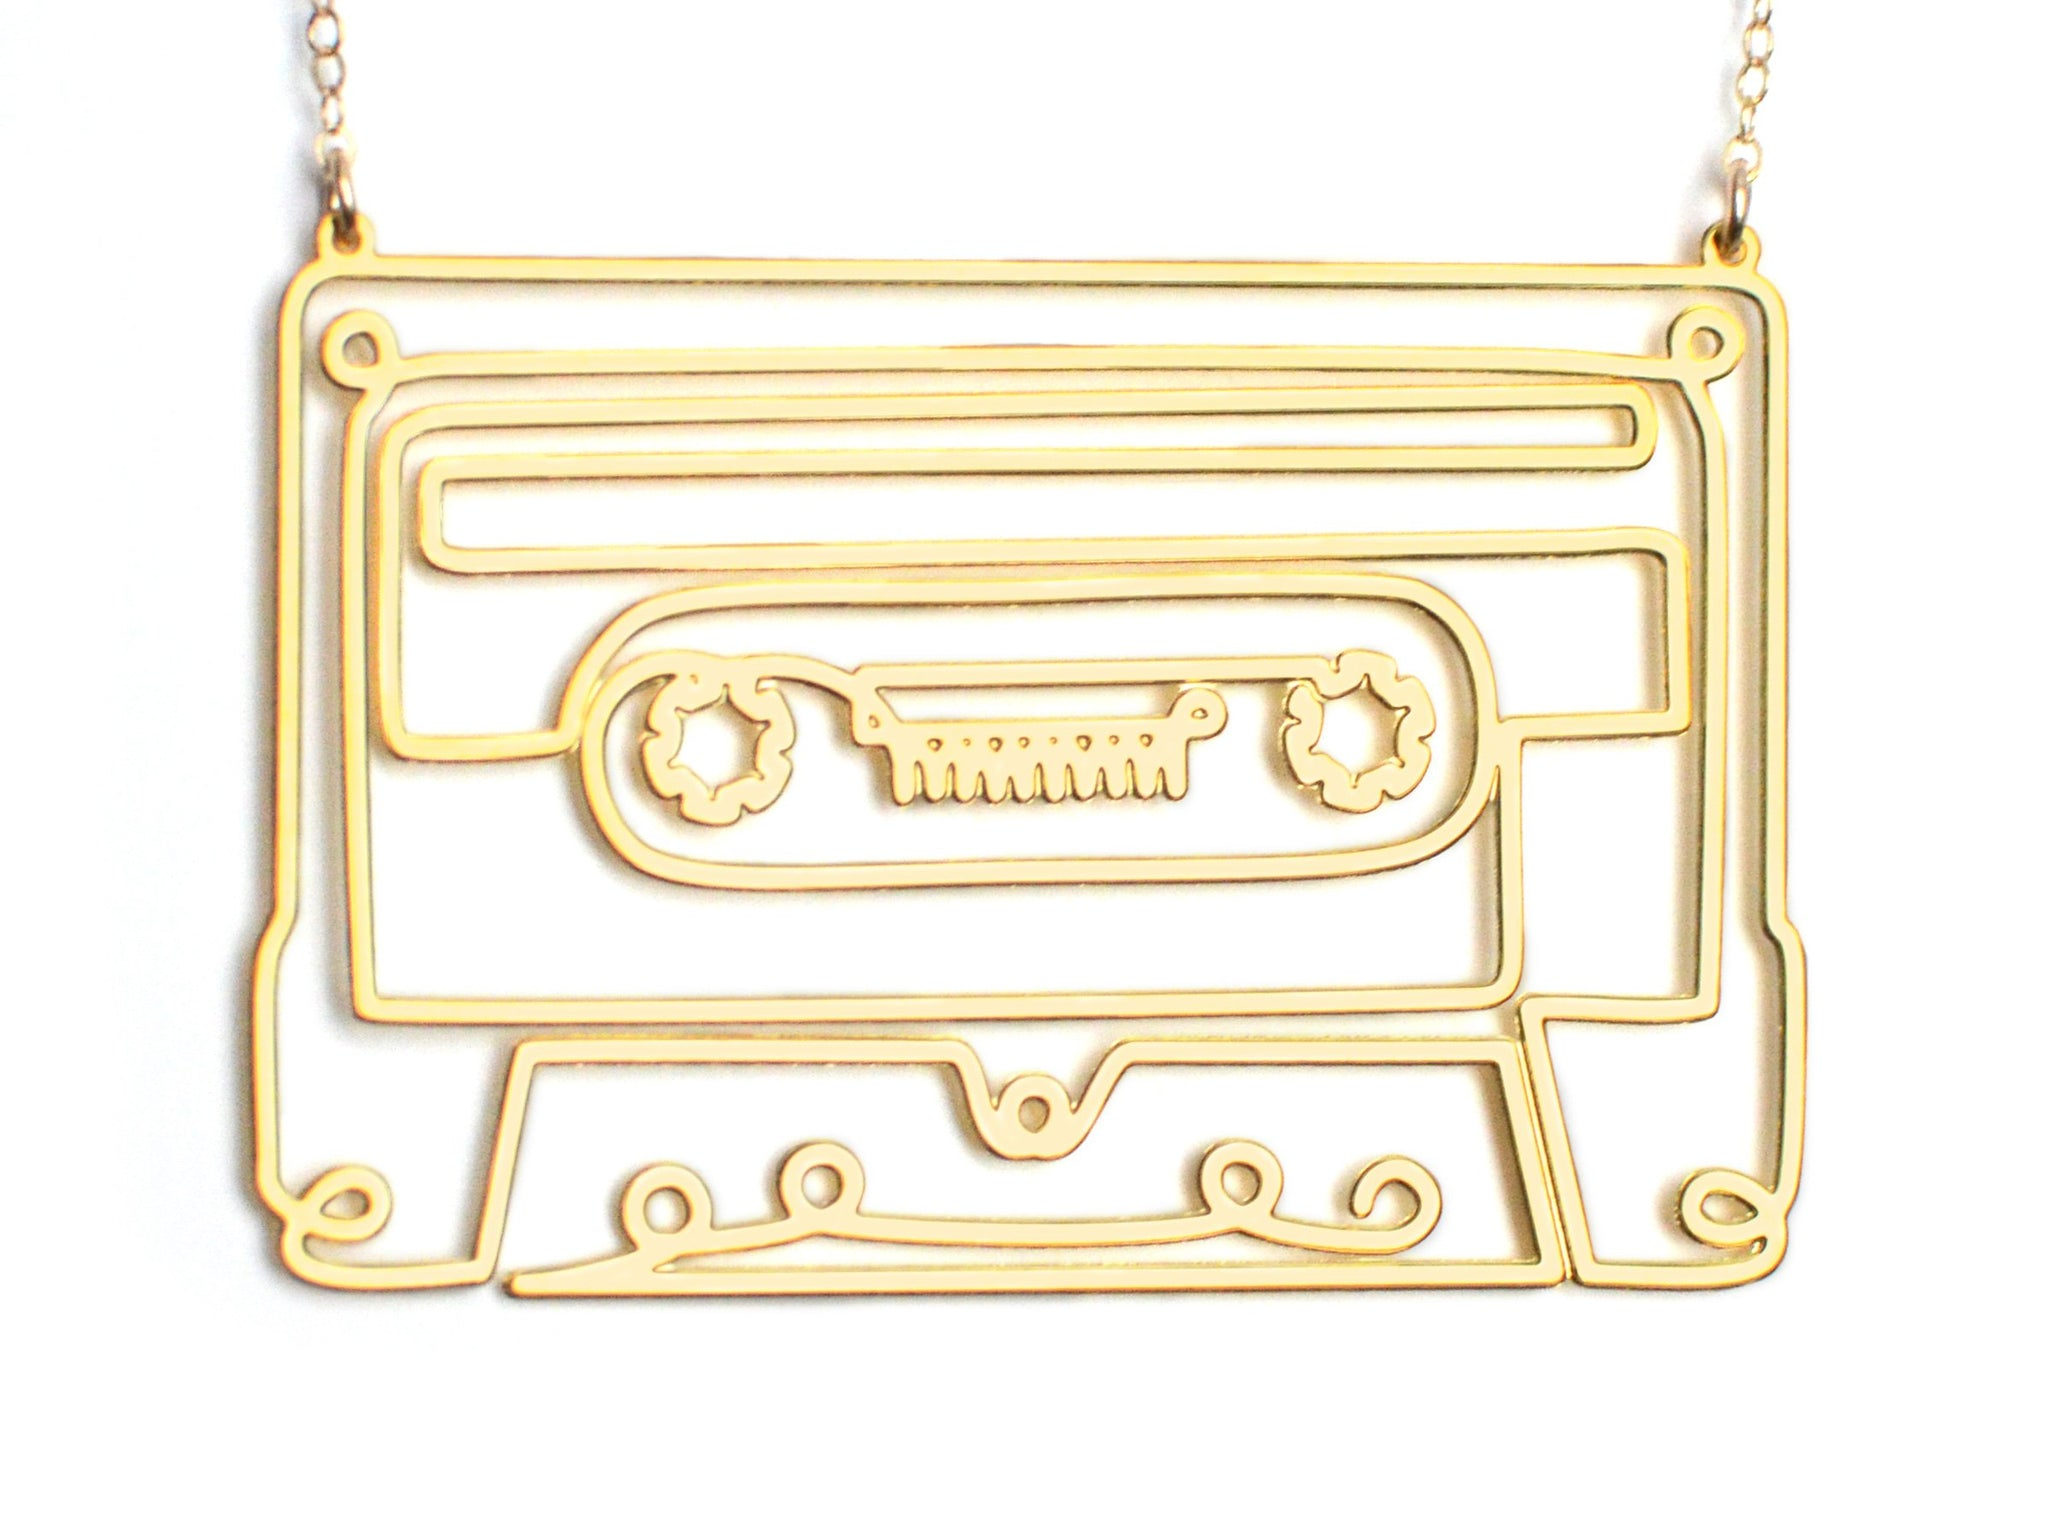 Cassette Tape Necklace - Brevity Jewelry - Made in USA - Affordable Gold and Silver Jewelry